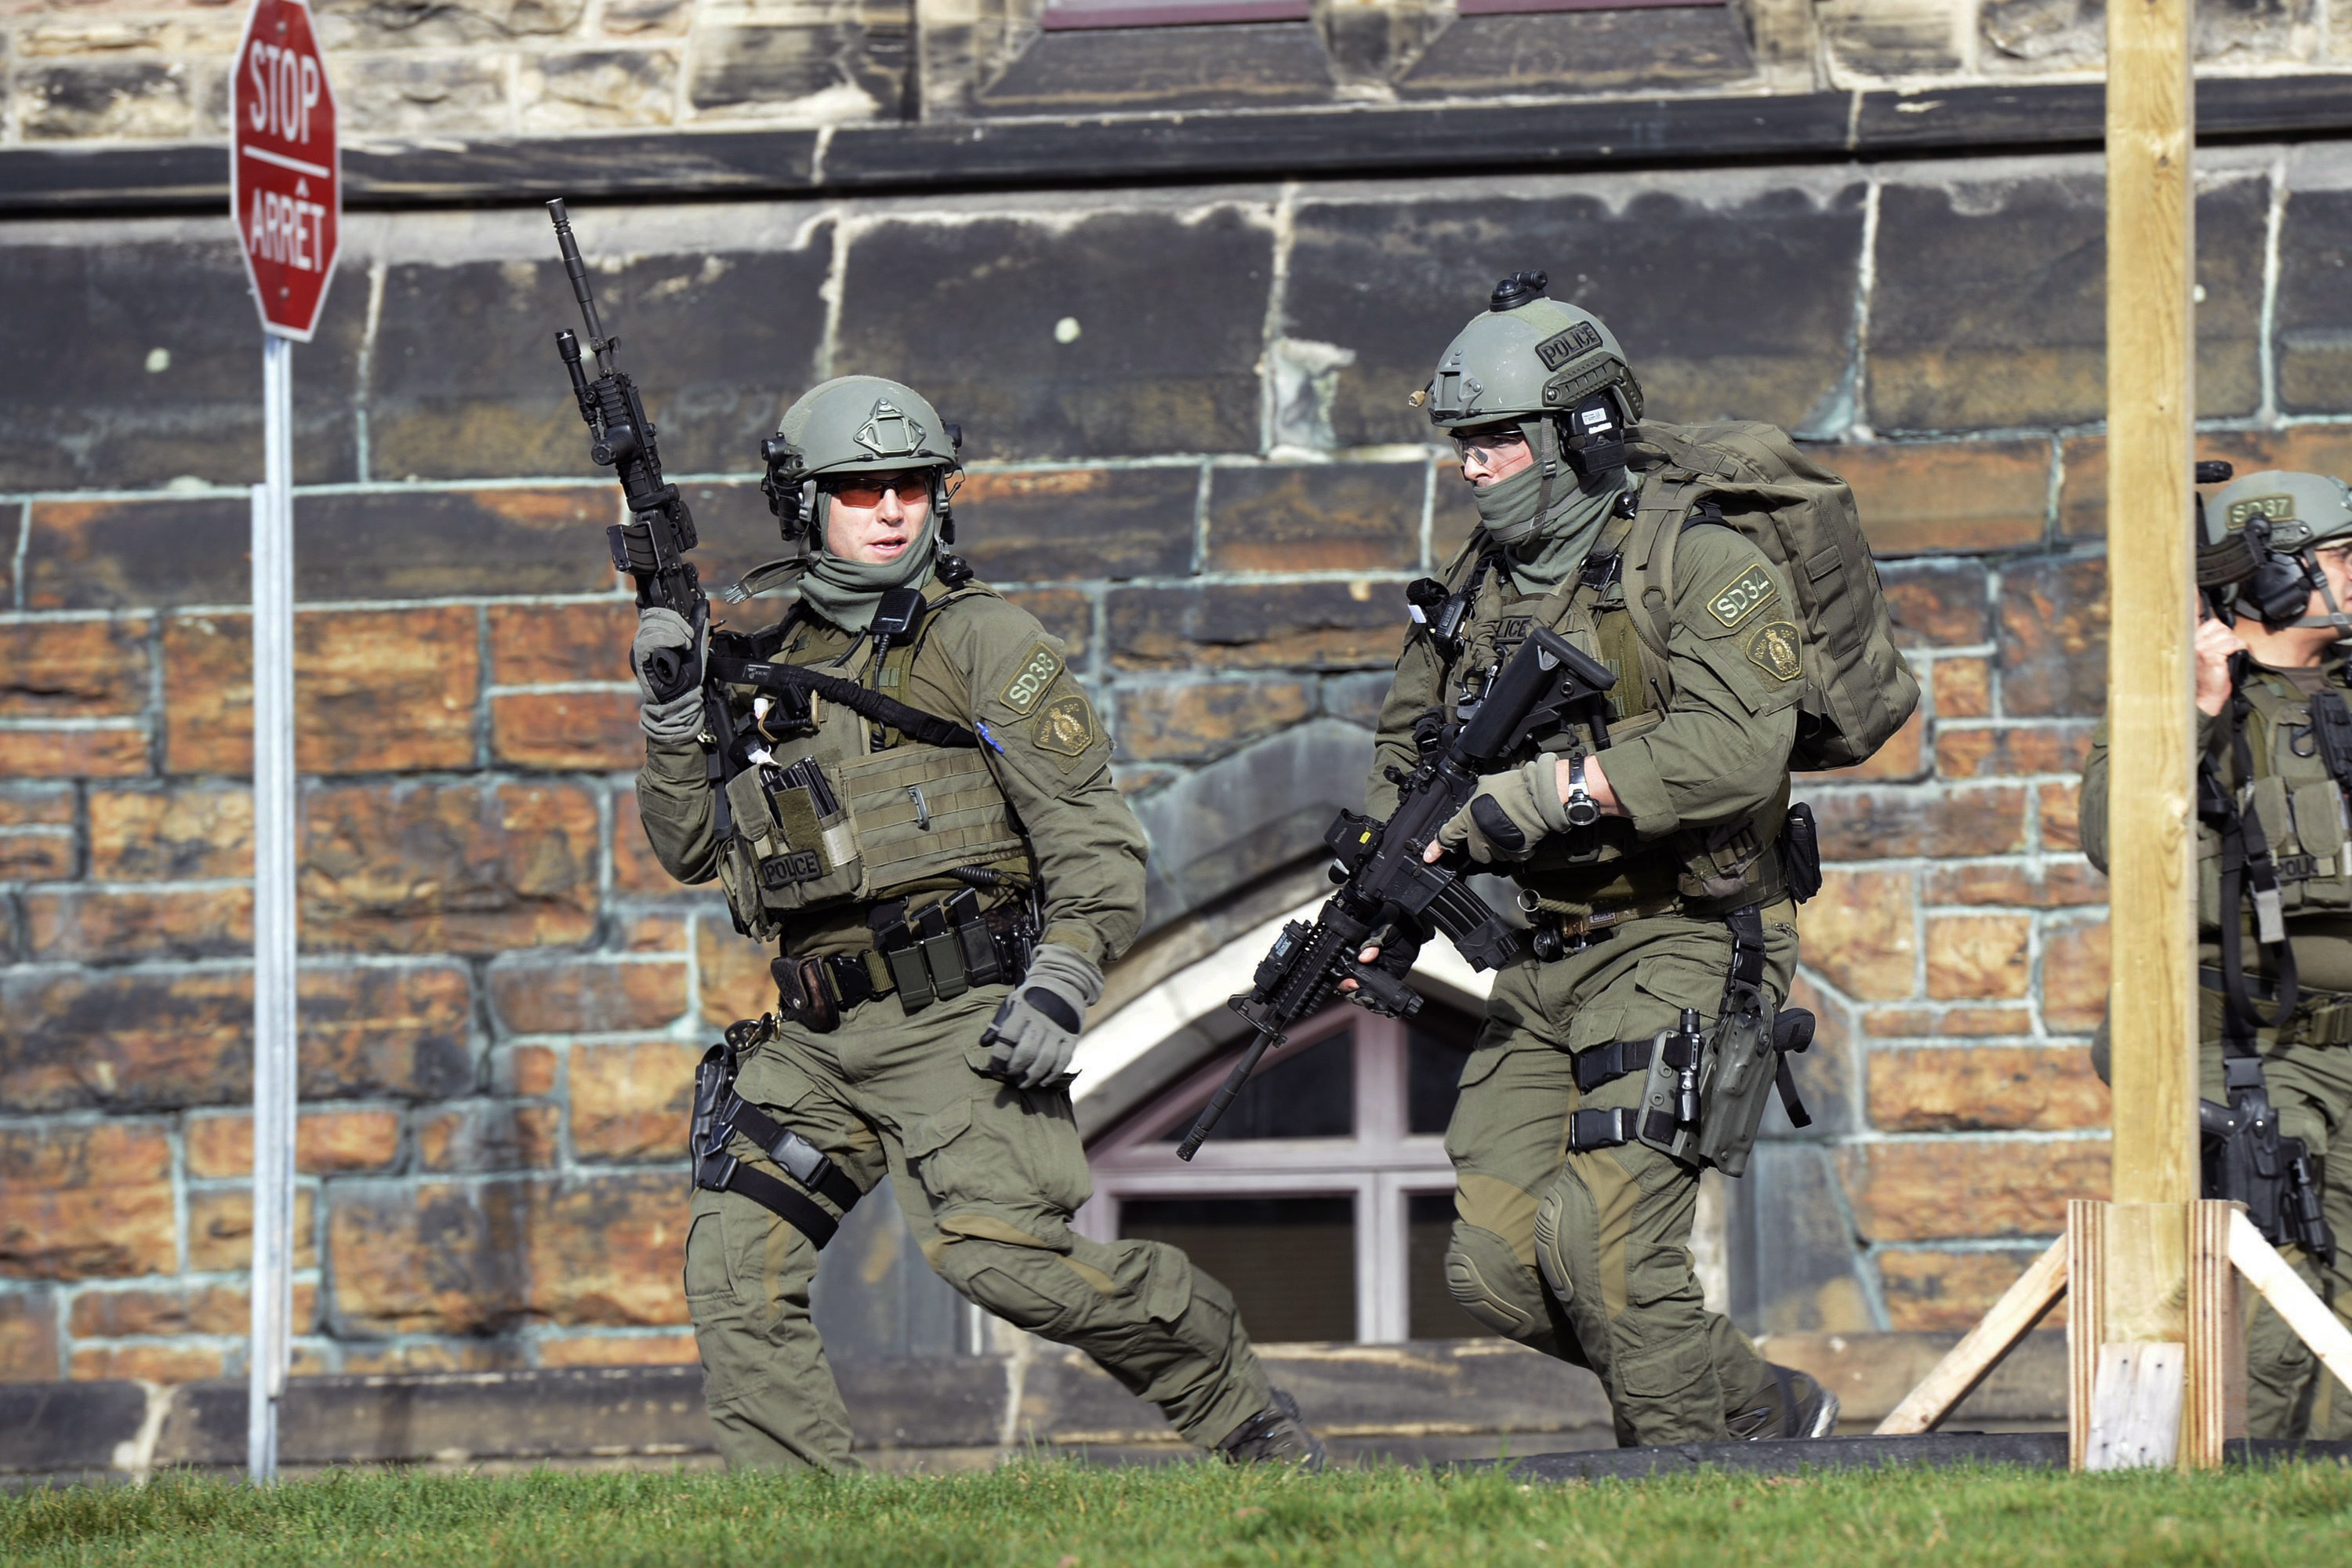 A Royal Canadian Mounted Police intervention team responds to a reported shooting at Parliament building in Ottawa, Wednesday, Oct. 22, 2014. (Adrian Wyld / The Canadian Press / AP)